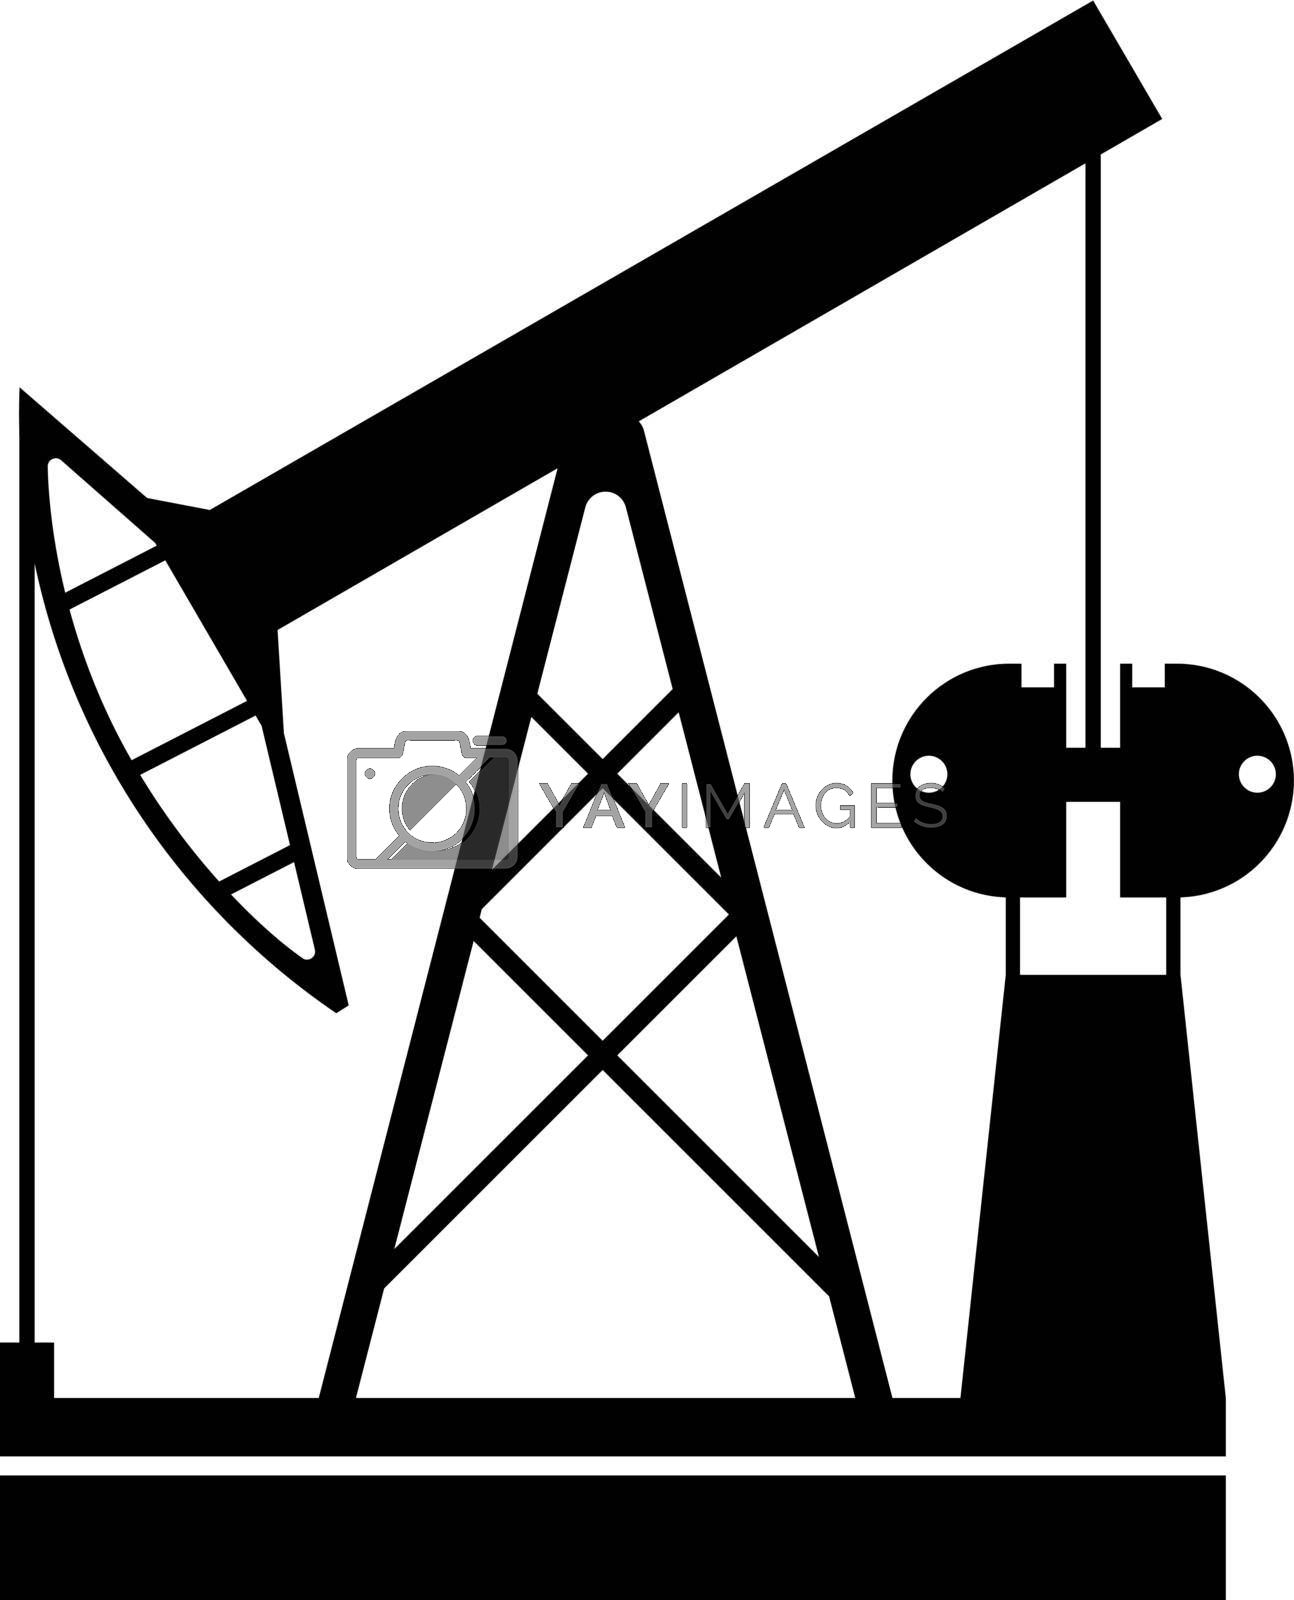 Royalty free image of black oil rig on a transparent background, energy security. Black pictogram on white background by RNko